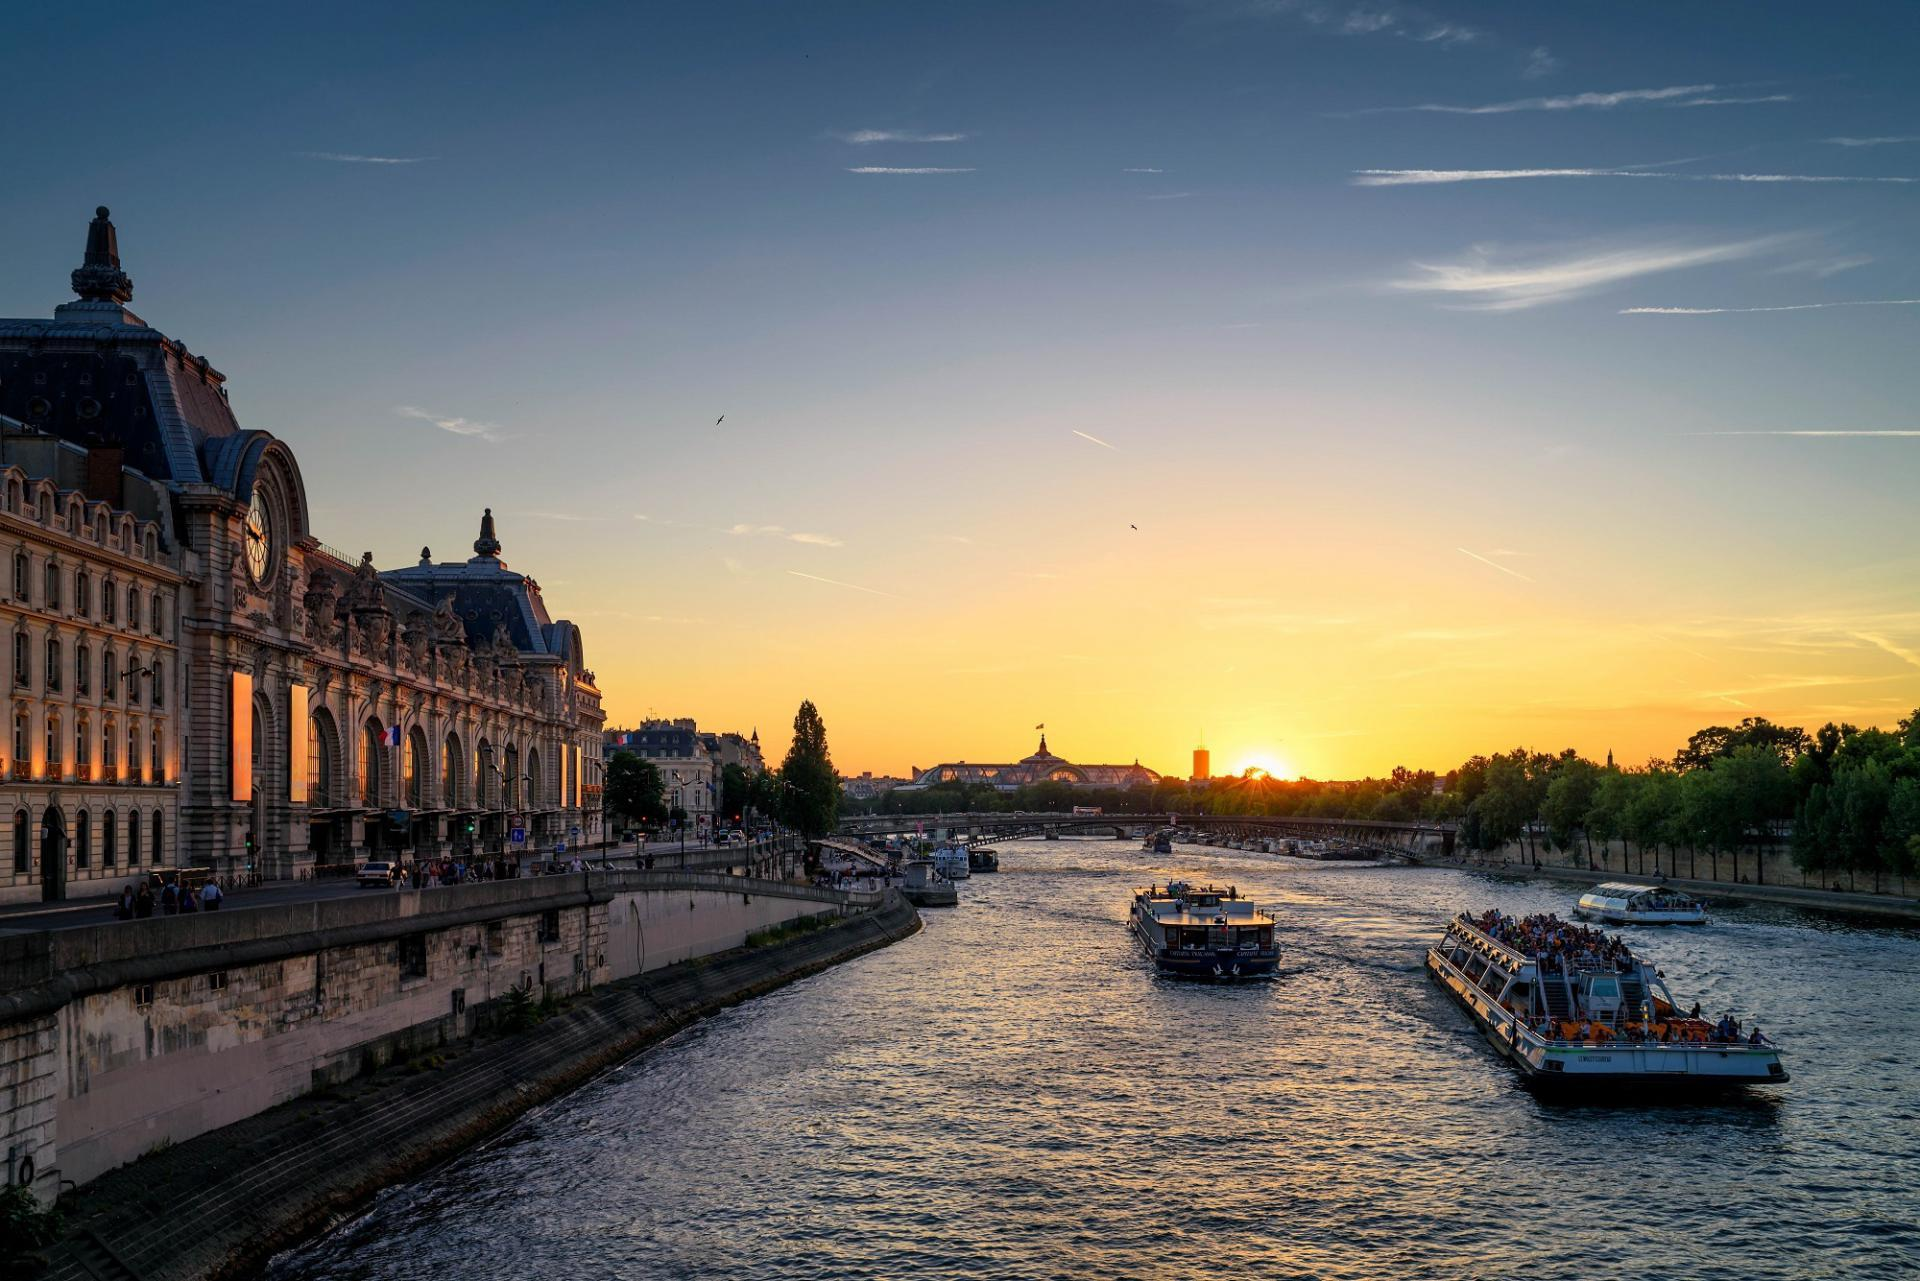 A romantic sojourn in the City of Light